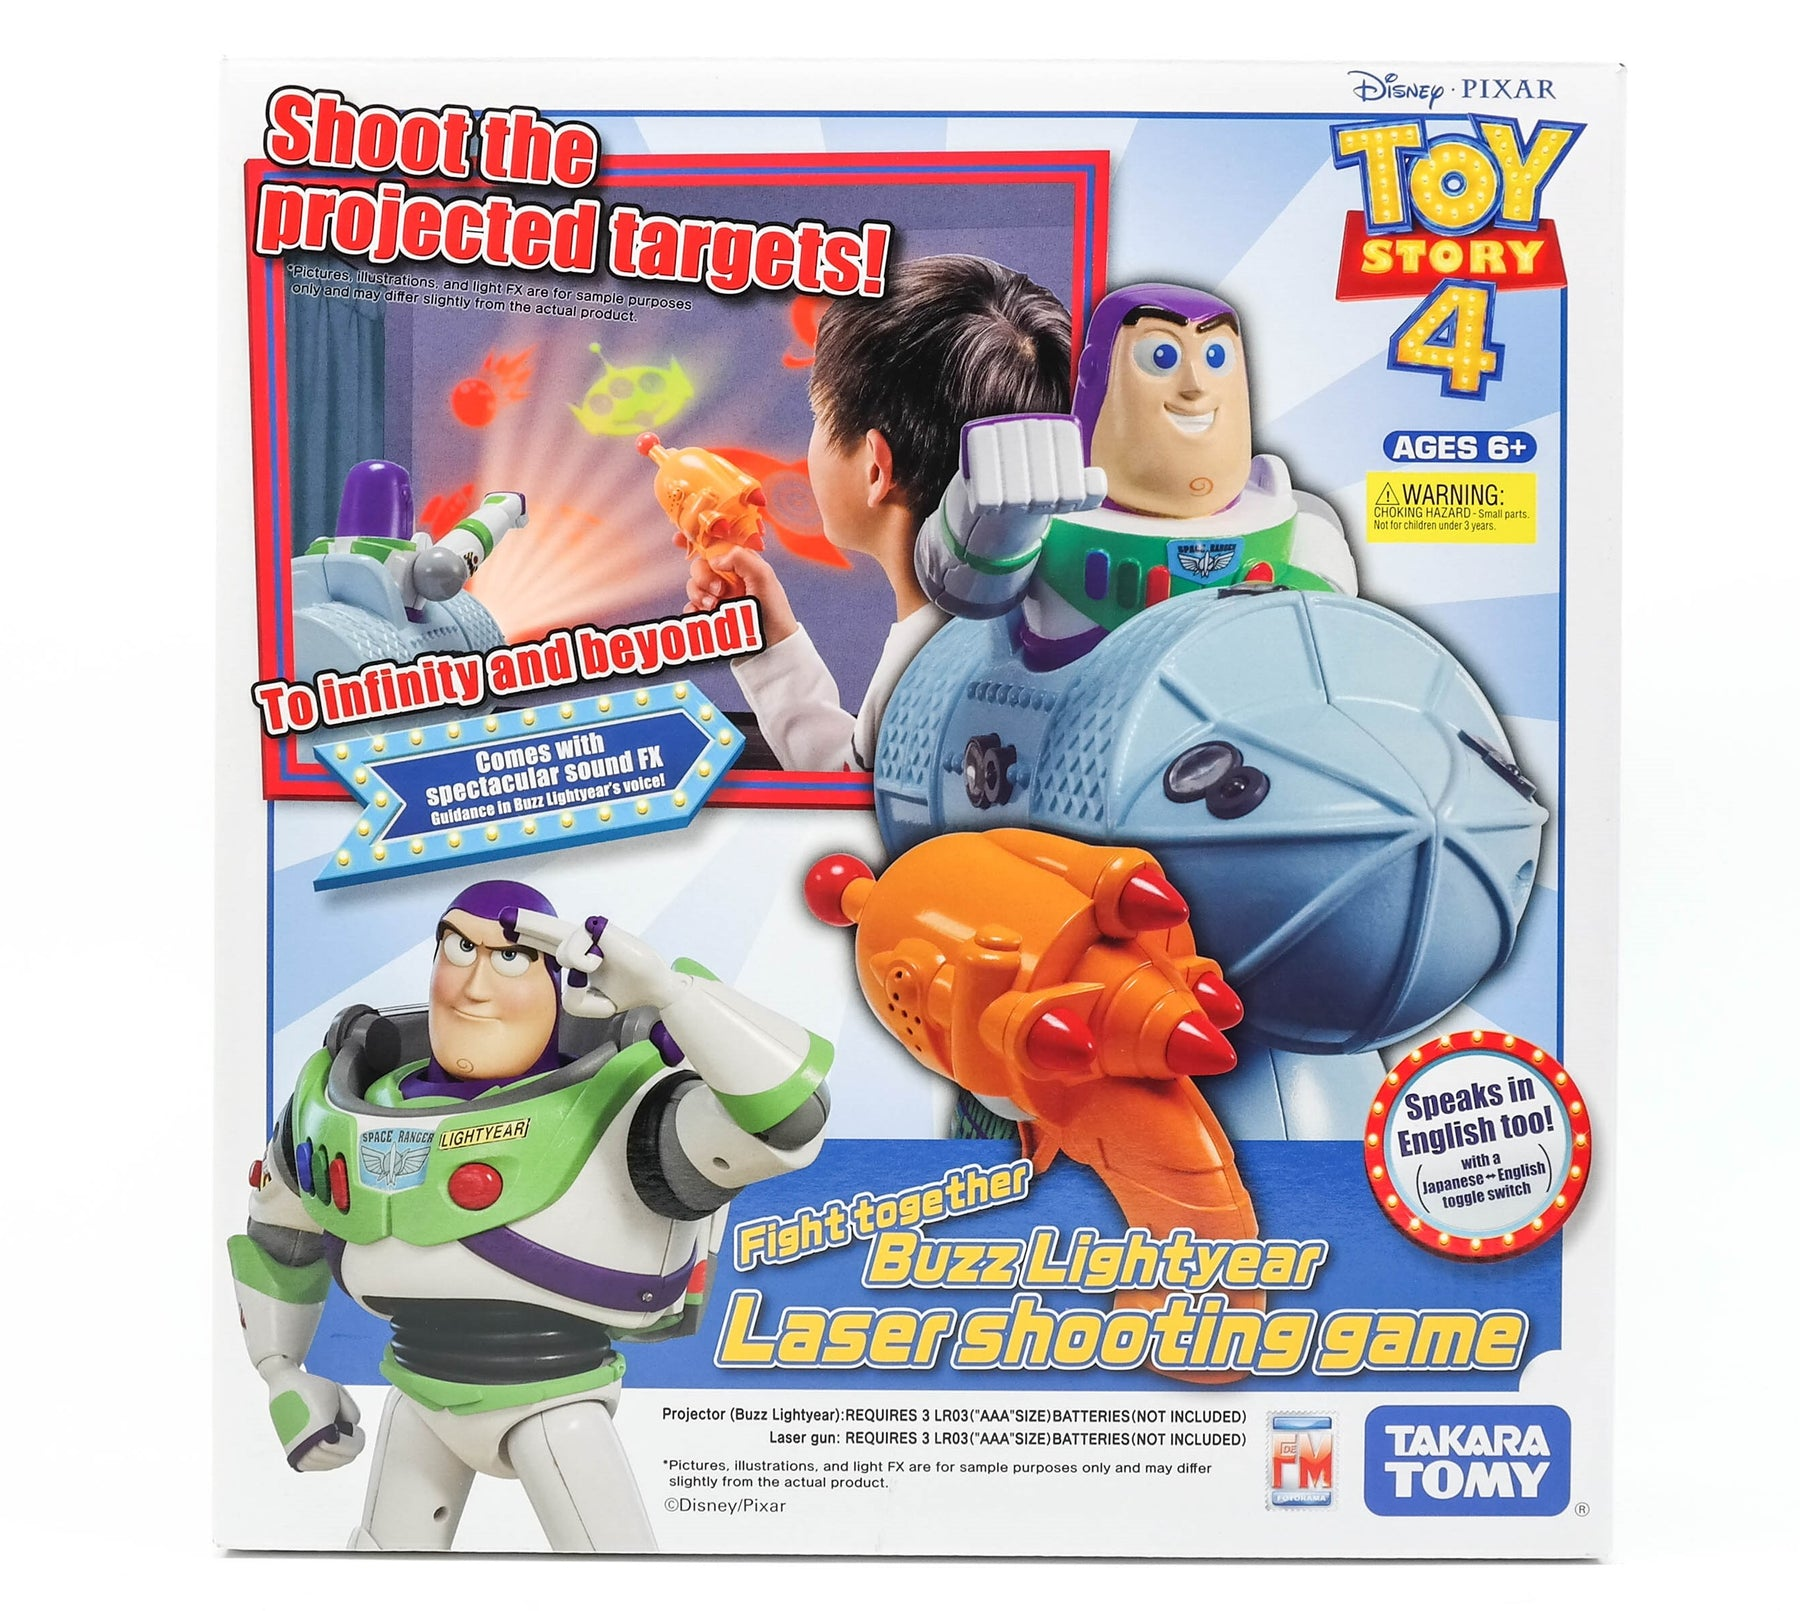 Toy Story 4 Lazer Shooting Game Buzz Lightyear